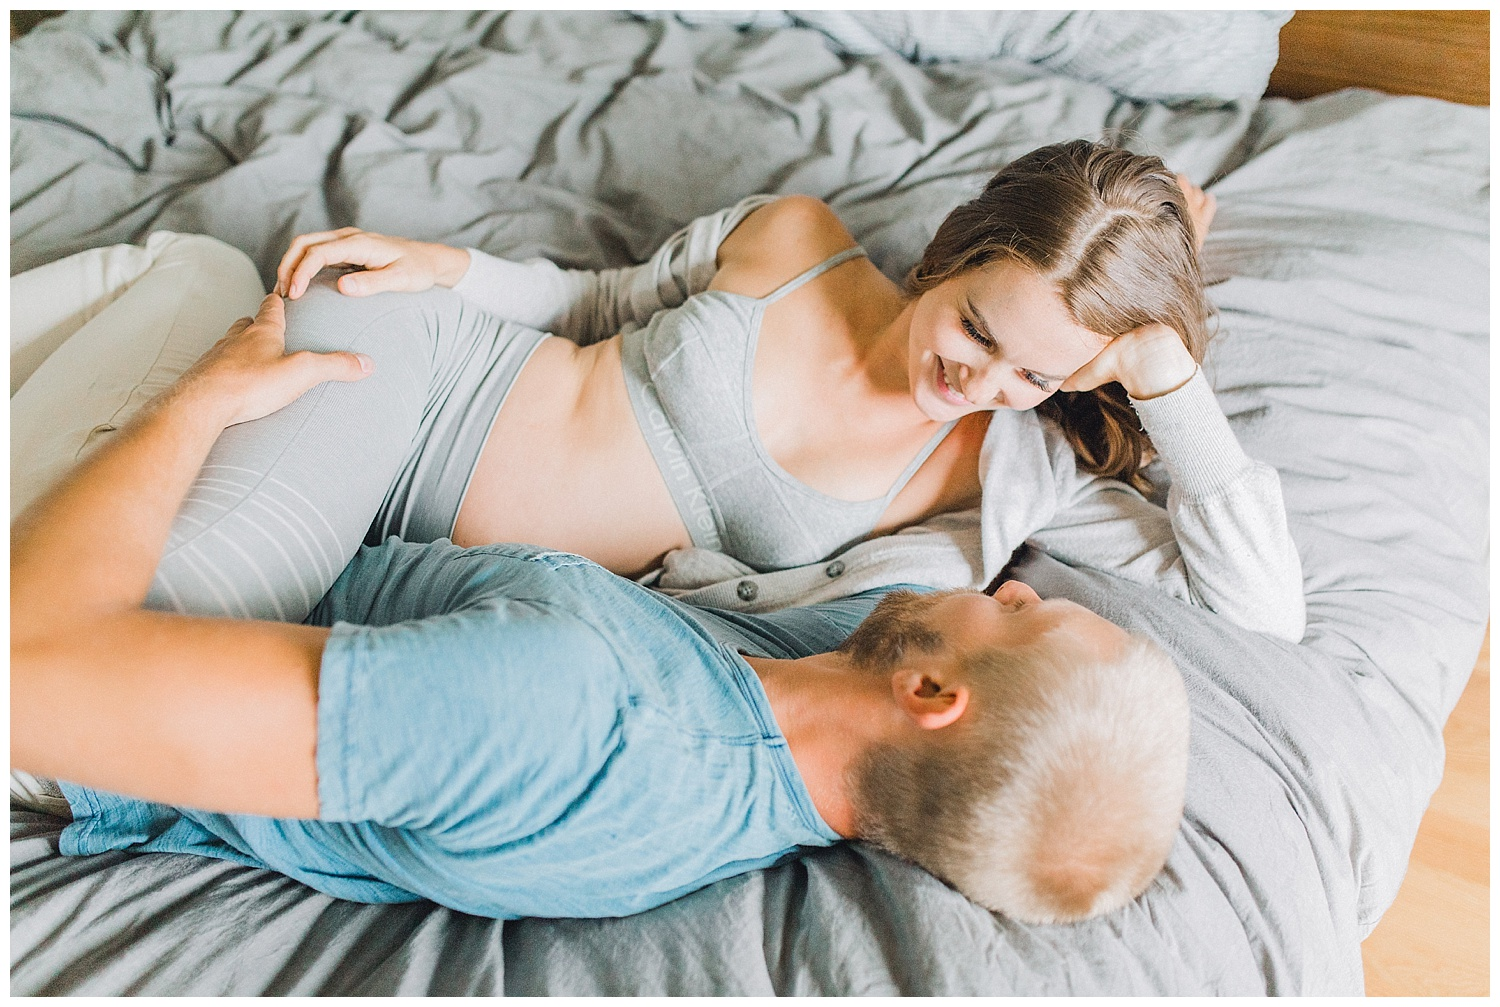 The Most Perfect In Home Maternity Lifestyle Photo Session | Pregnancy Goals | Emma Rose Company Seattle and Portland Wedding and Potrait Photographer | Dream Chasers Workshop_0024.jpg